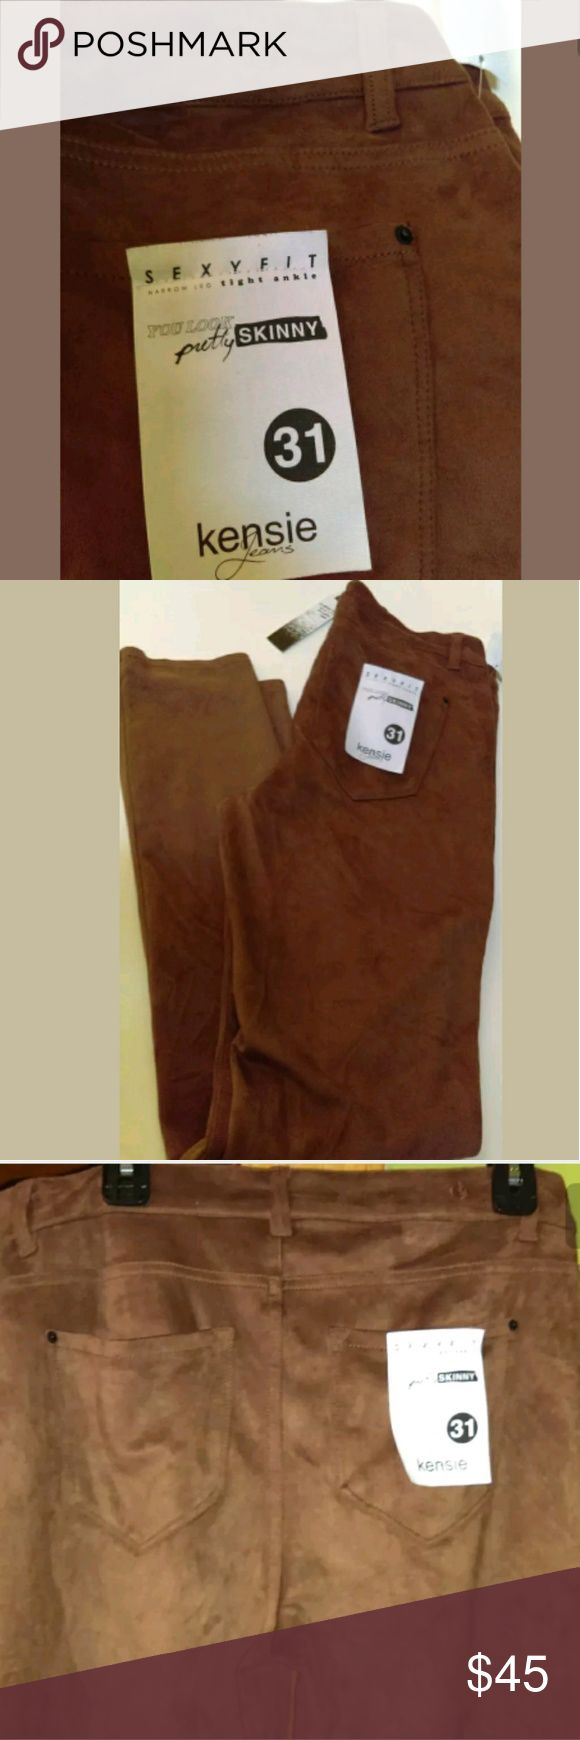 "Kensie Jeans Skinny Deep Camel Brown Faux Suede New Kensie Jeans Deep Camel Brown Soft Faux Suede Sexy Fit Skinny Pants.  *""You Look Pretty SKINNY"" pants  *Soft Faux Suede  *Skinny Pants  *Narrow Leg, tight ankle  *Zip Fly with Button Closure  *5 Pocket Style  *Mid Rise  *Size 31  *Polyester/Spandex  *New with tags  *Logo Patch Above Back Pocket  *MSRP $98.00 Kensie Jeans Jeans Skinny"